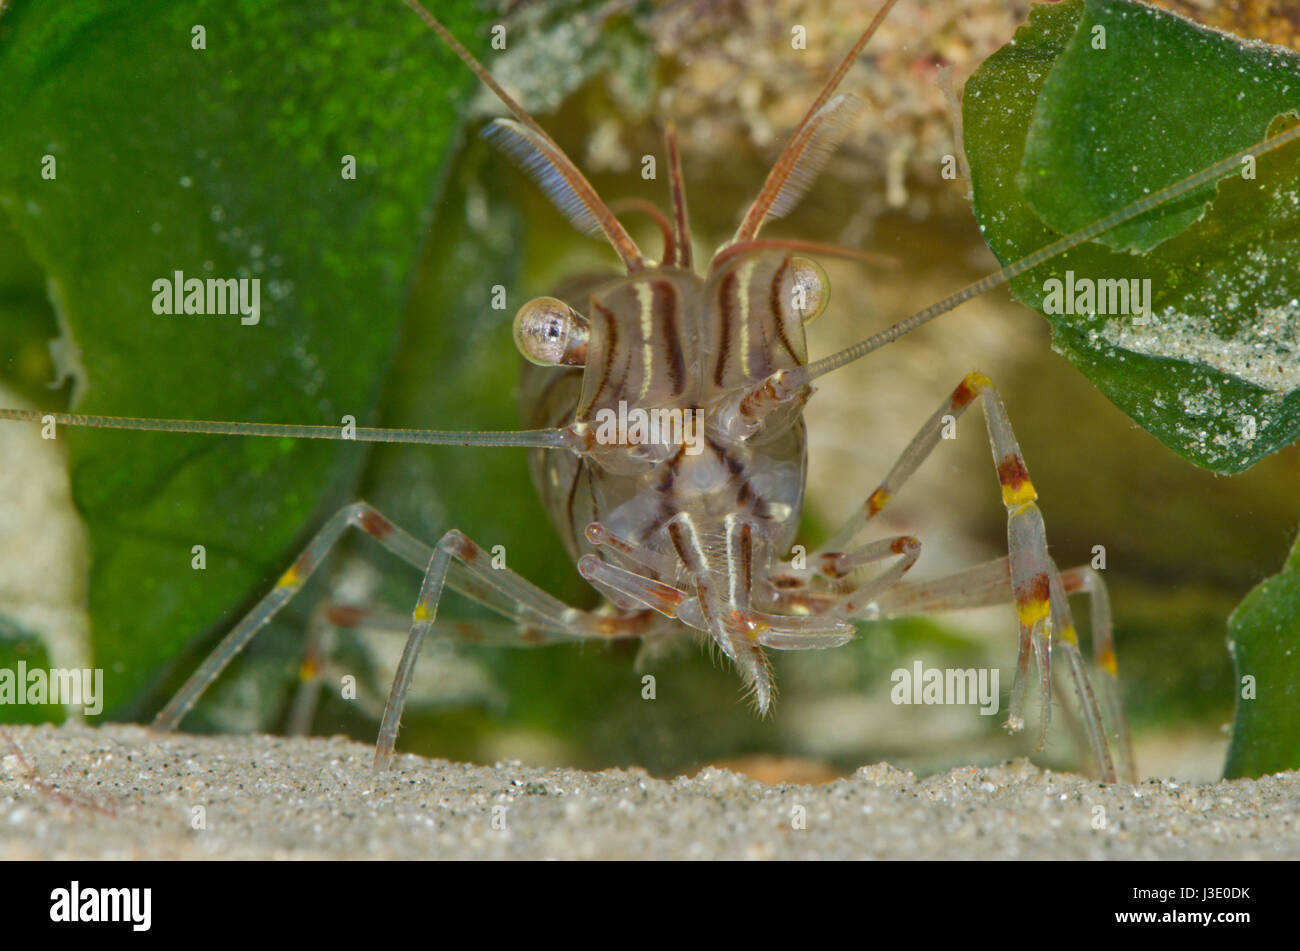 Common prawn (Palaemon serratus) cleaning pincer. Sussex, UK Stock Photo